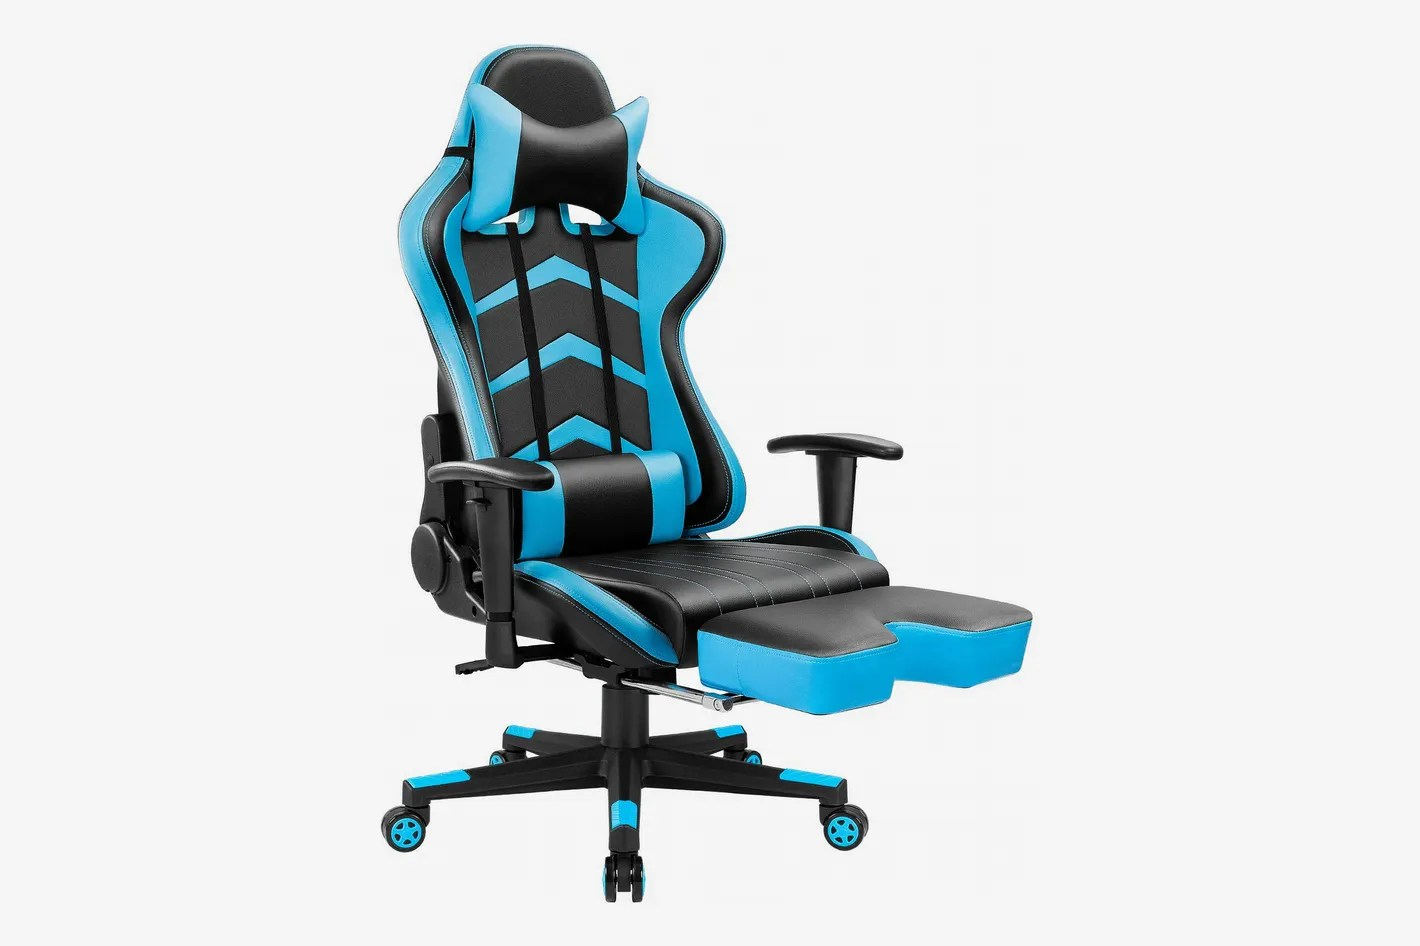 aqua desk chair vintage gossip 15 best office chairs and home 2019 furmax high back gaming racing